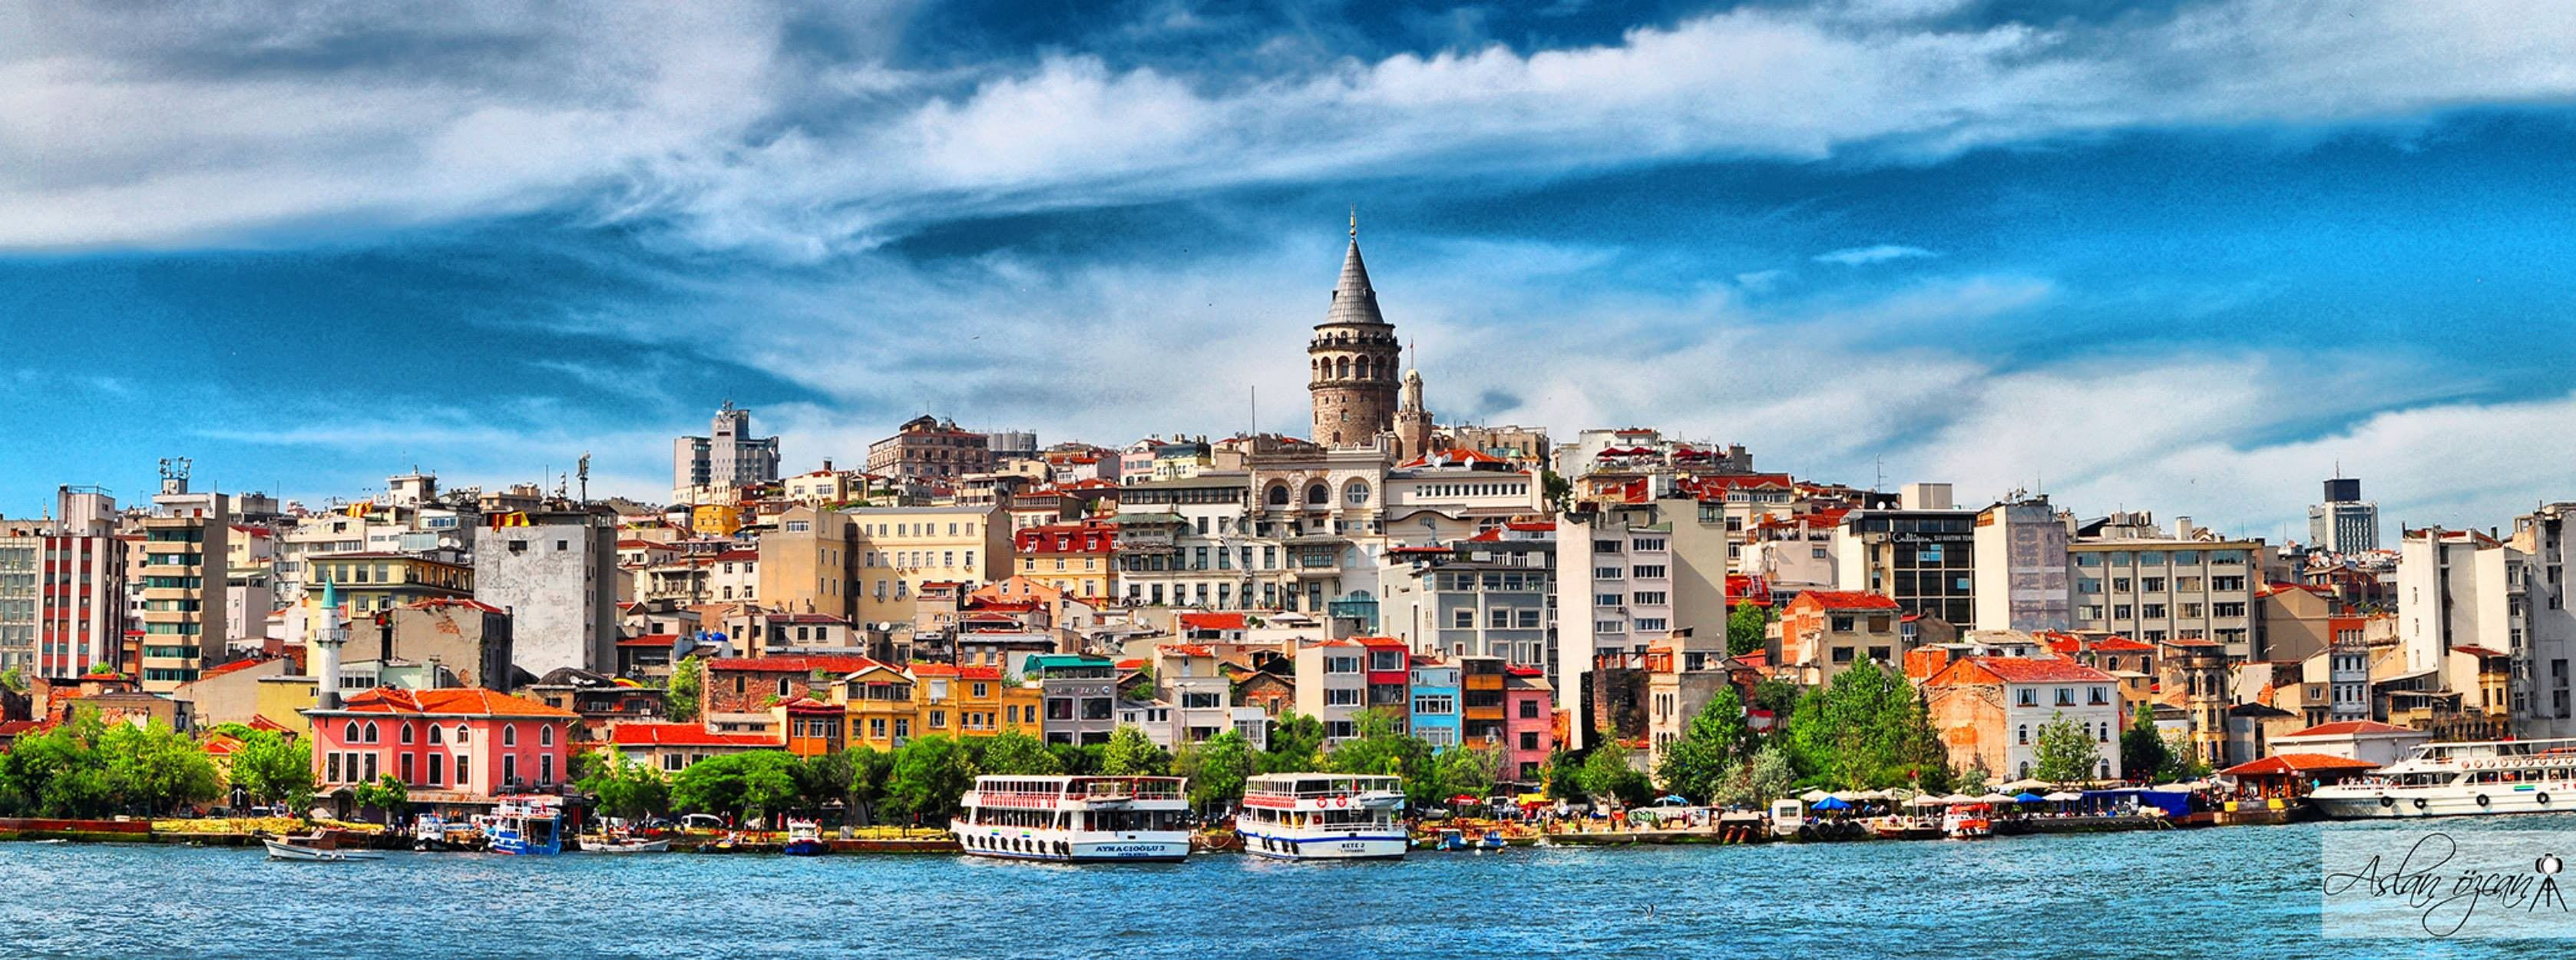 Istanbul Turkey Wallpapers In 4k Hd Wallpapers Istanbul